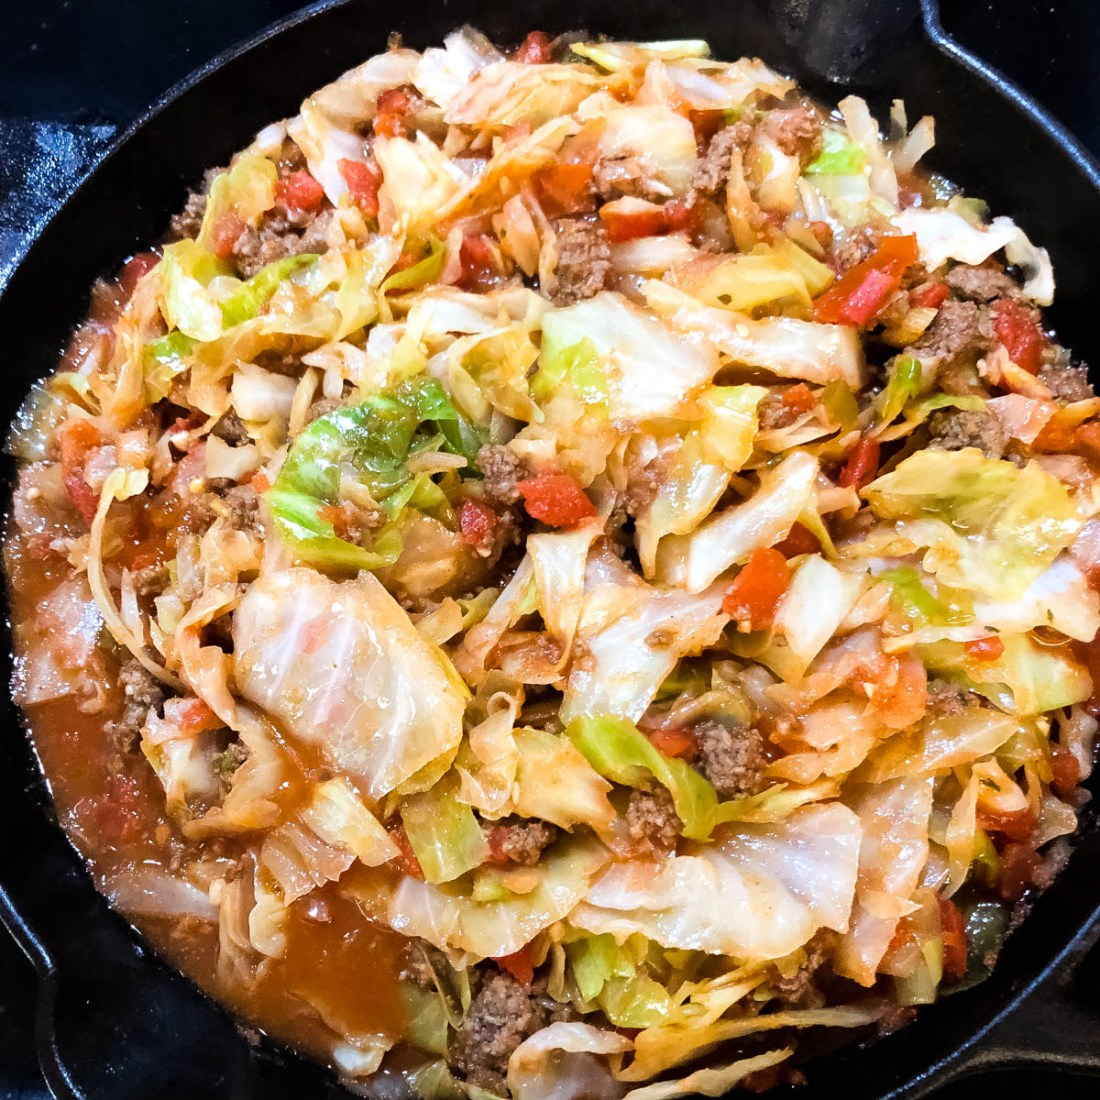 Red gravy, wilted cabbage, ground beef and the Cajun trinity in a black cast iron skillet.